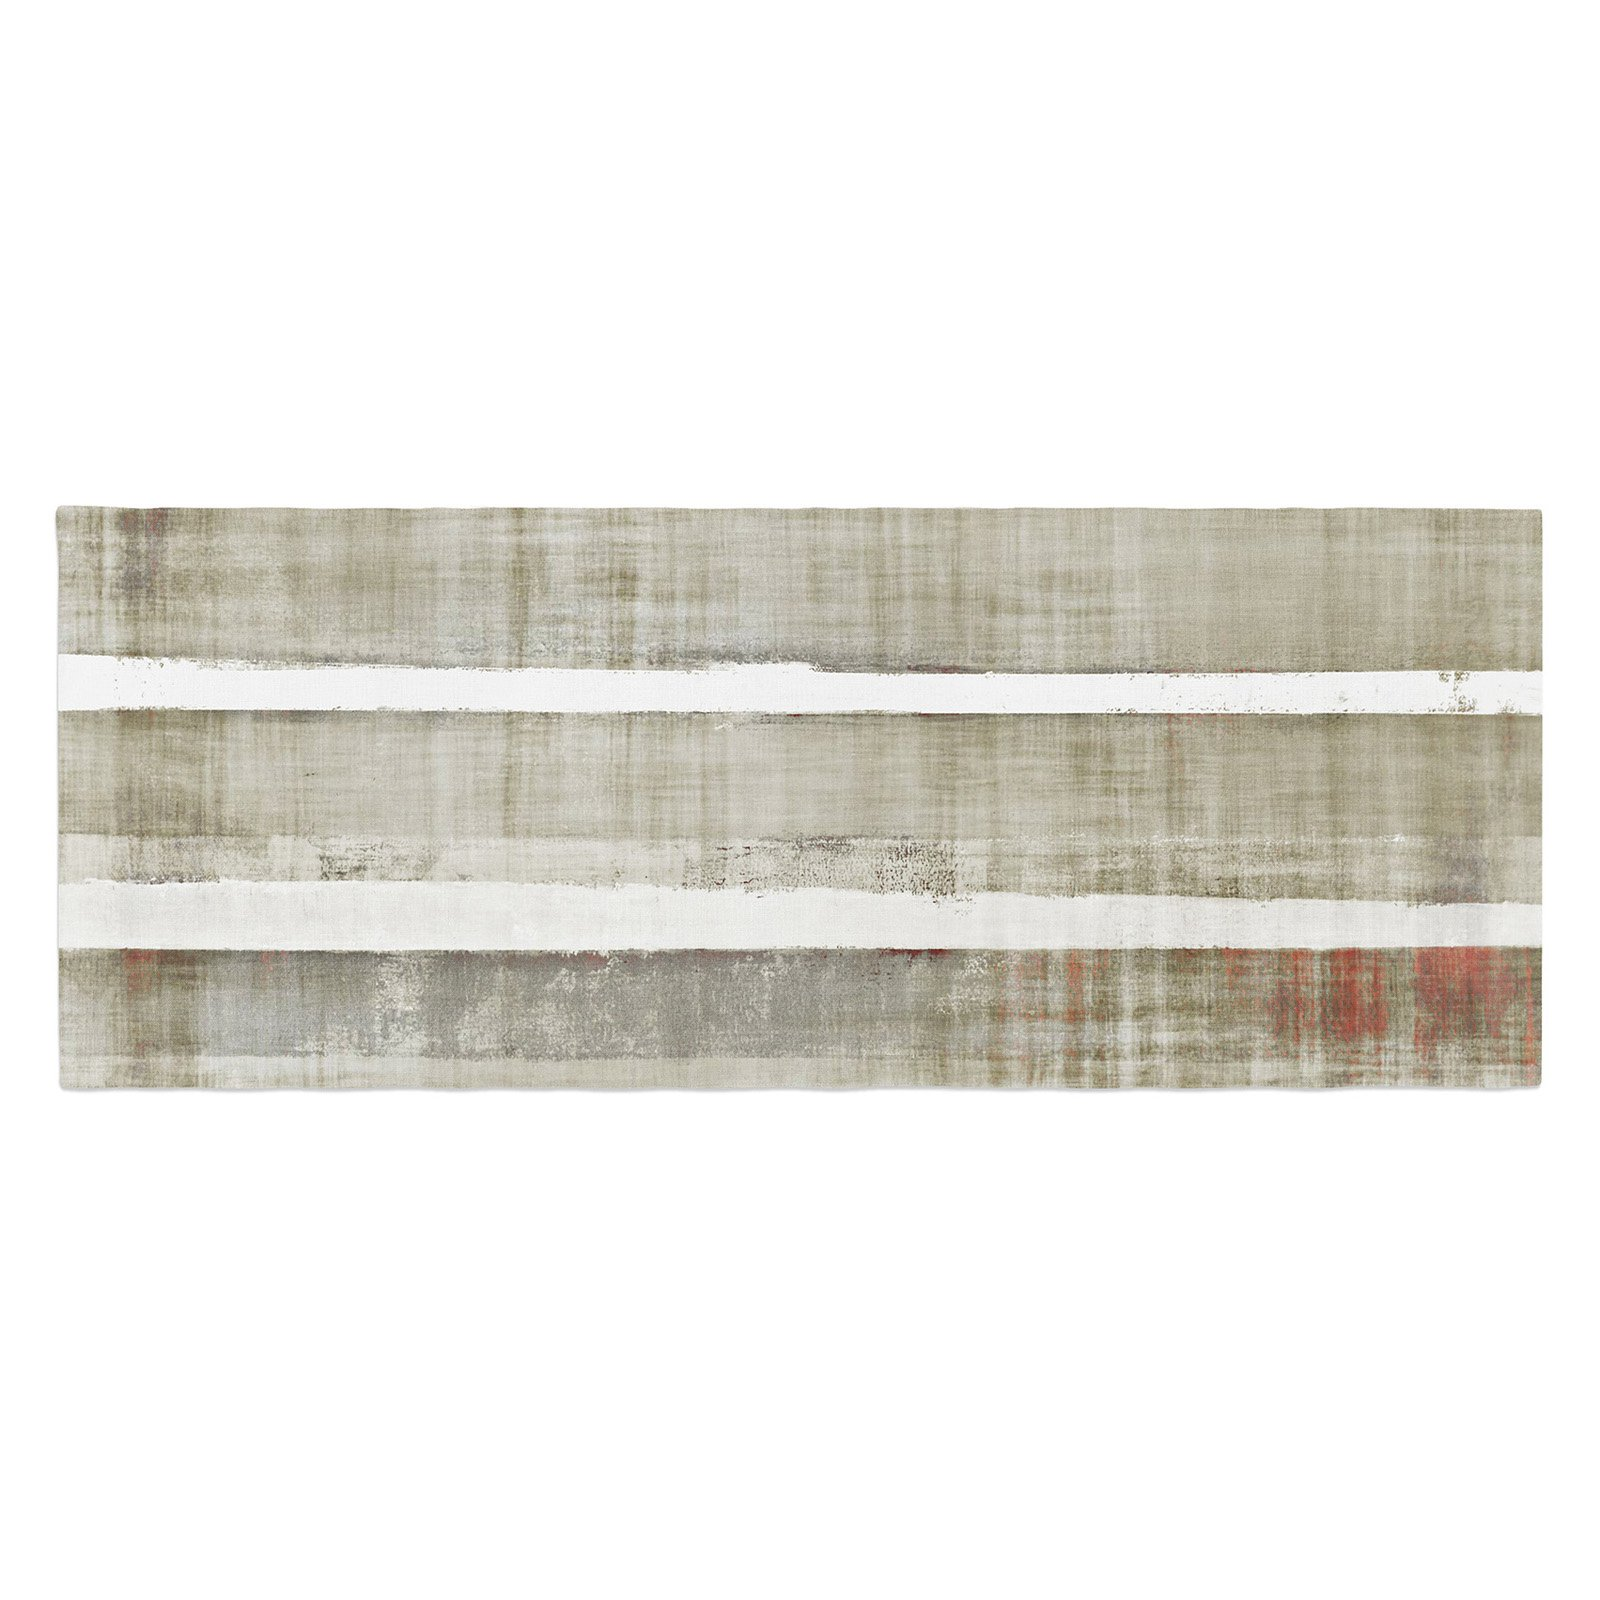 CarolLynn Tice Loving Life Bed Runner by Kess InHouse